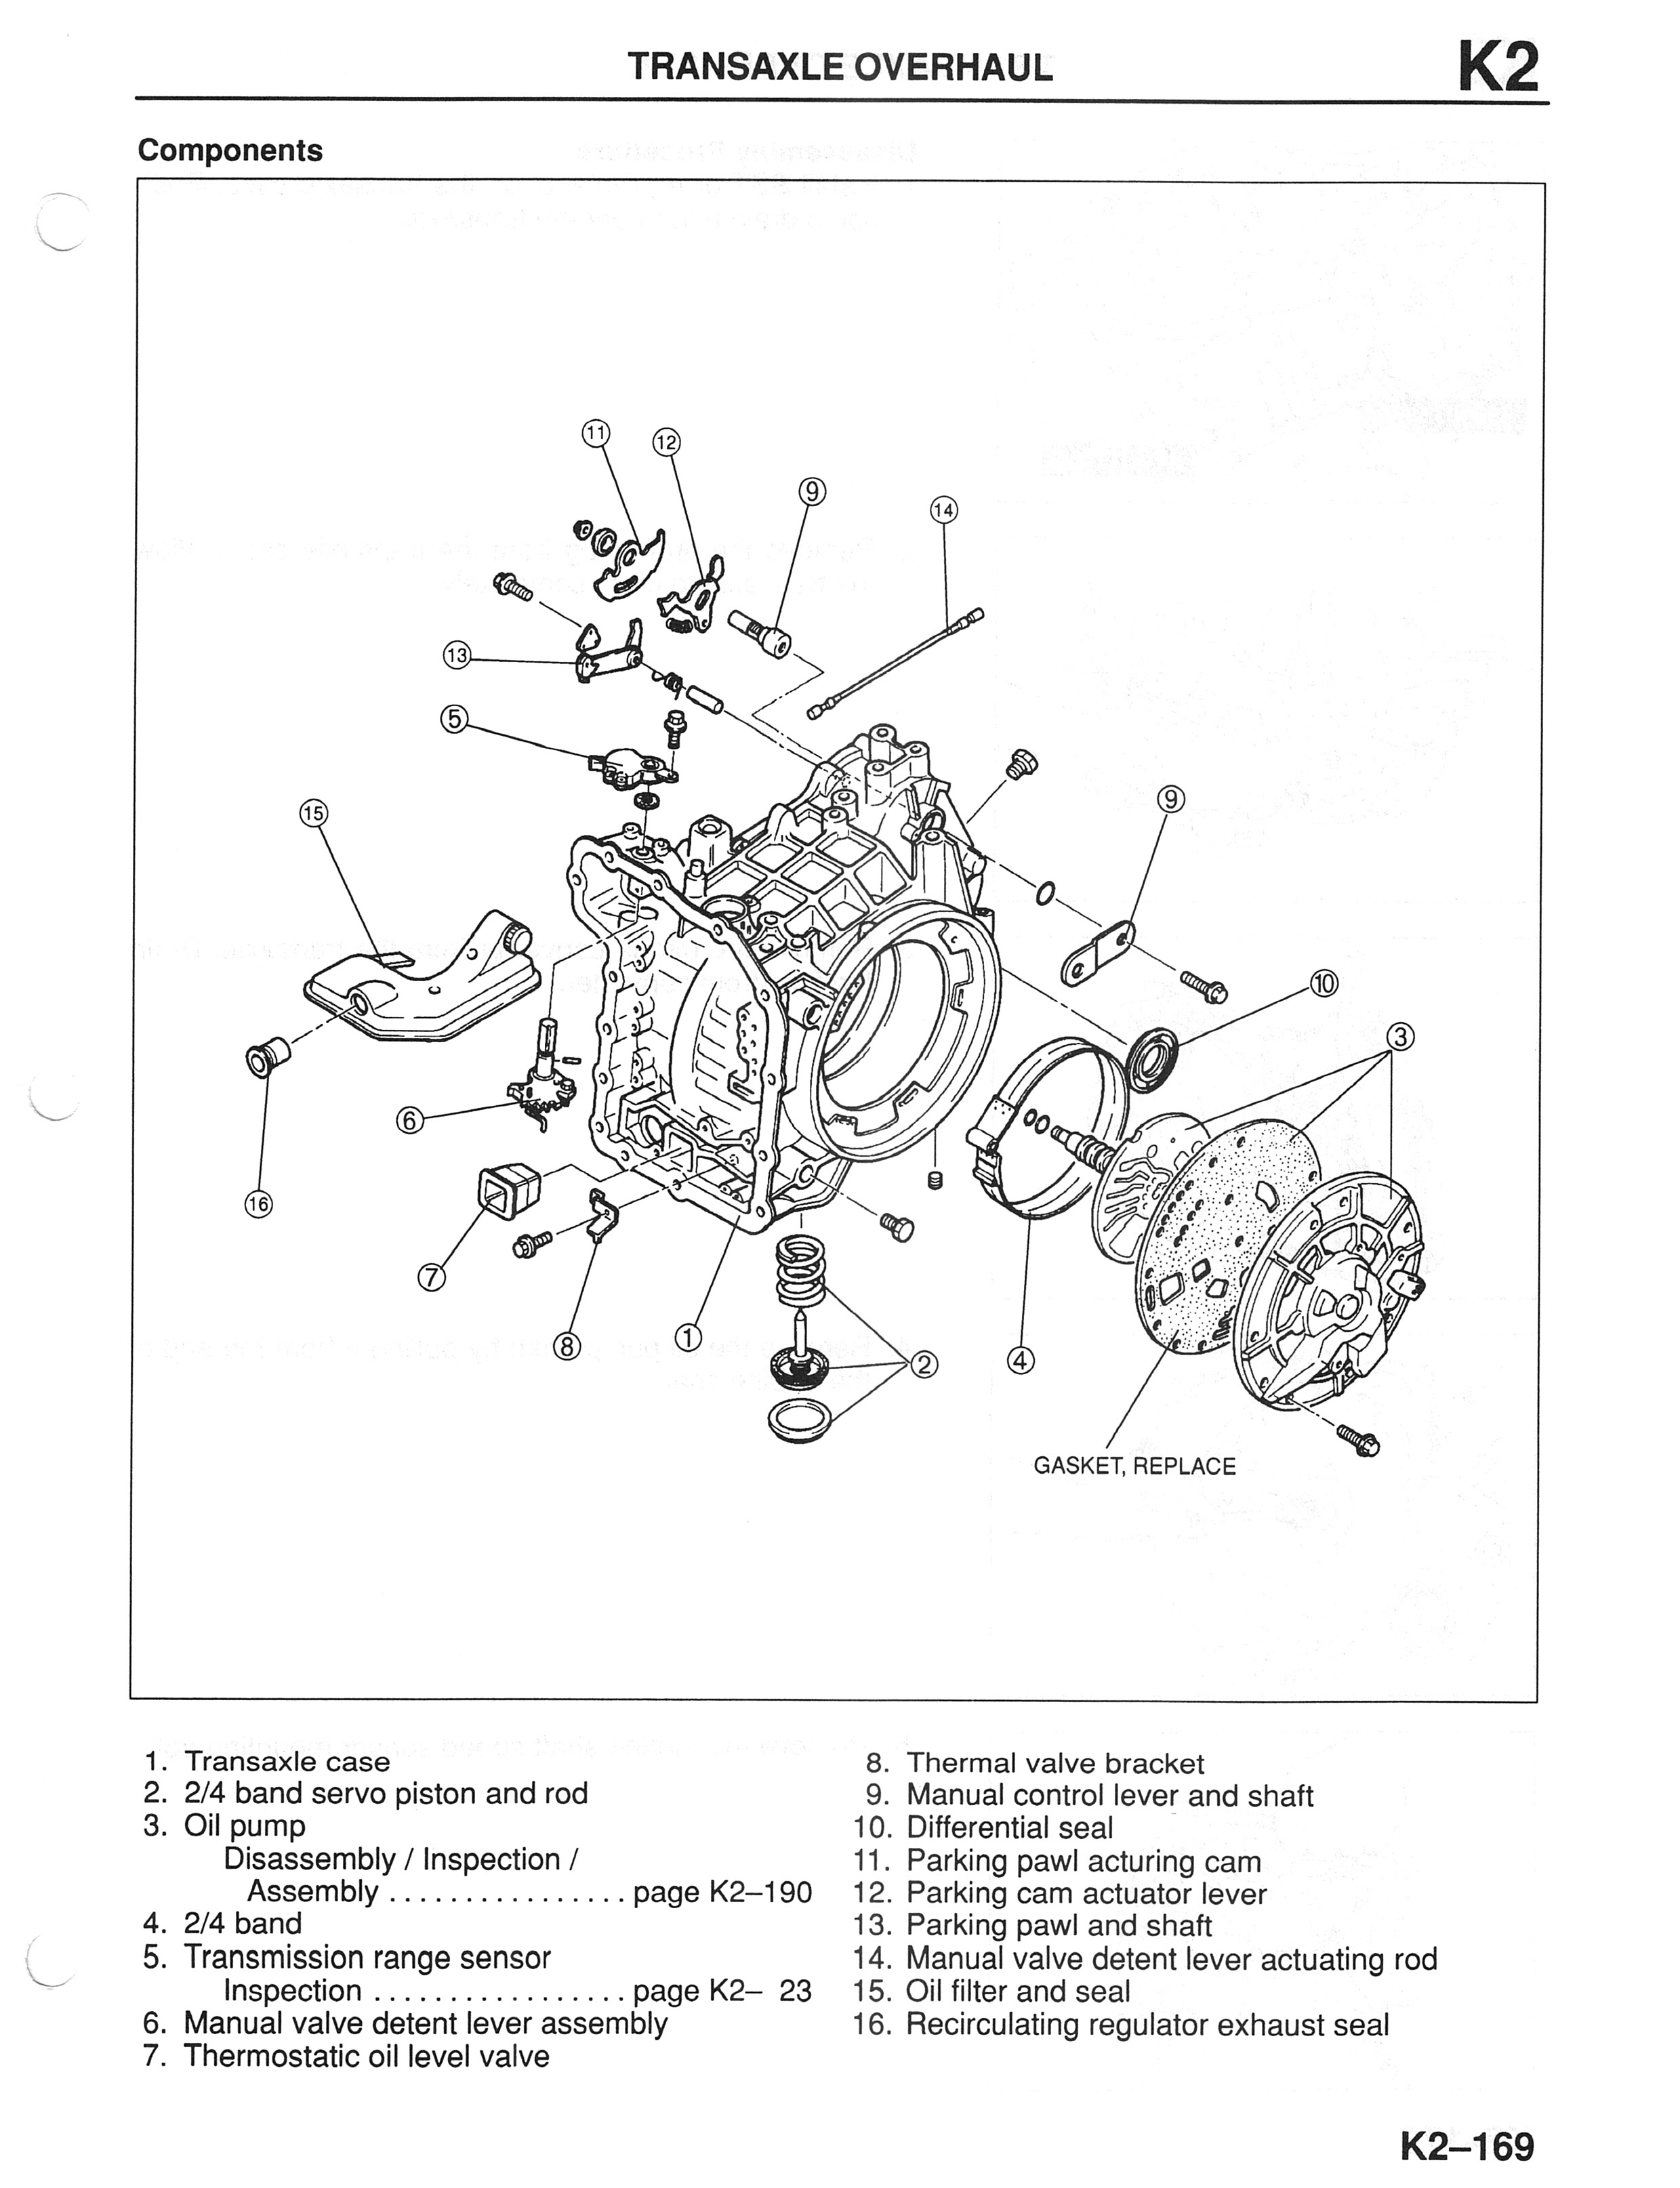 Service manual [Diagram Of How A 1996 Mazda Millenia